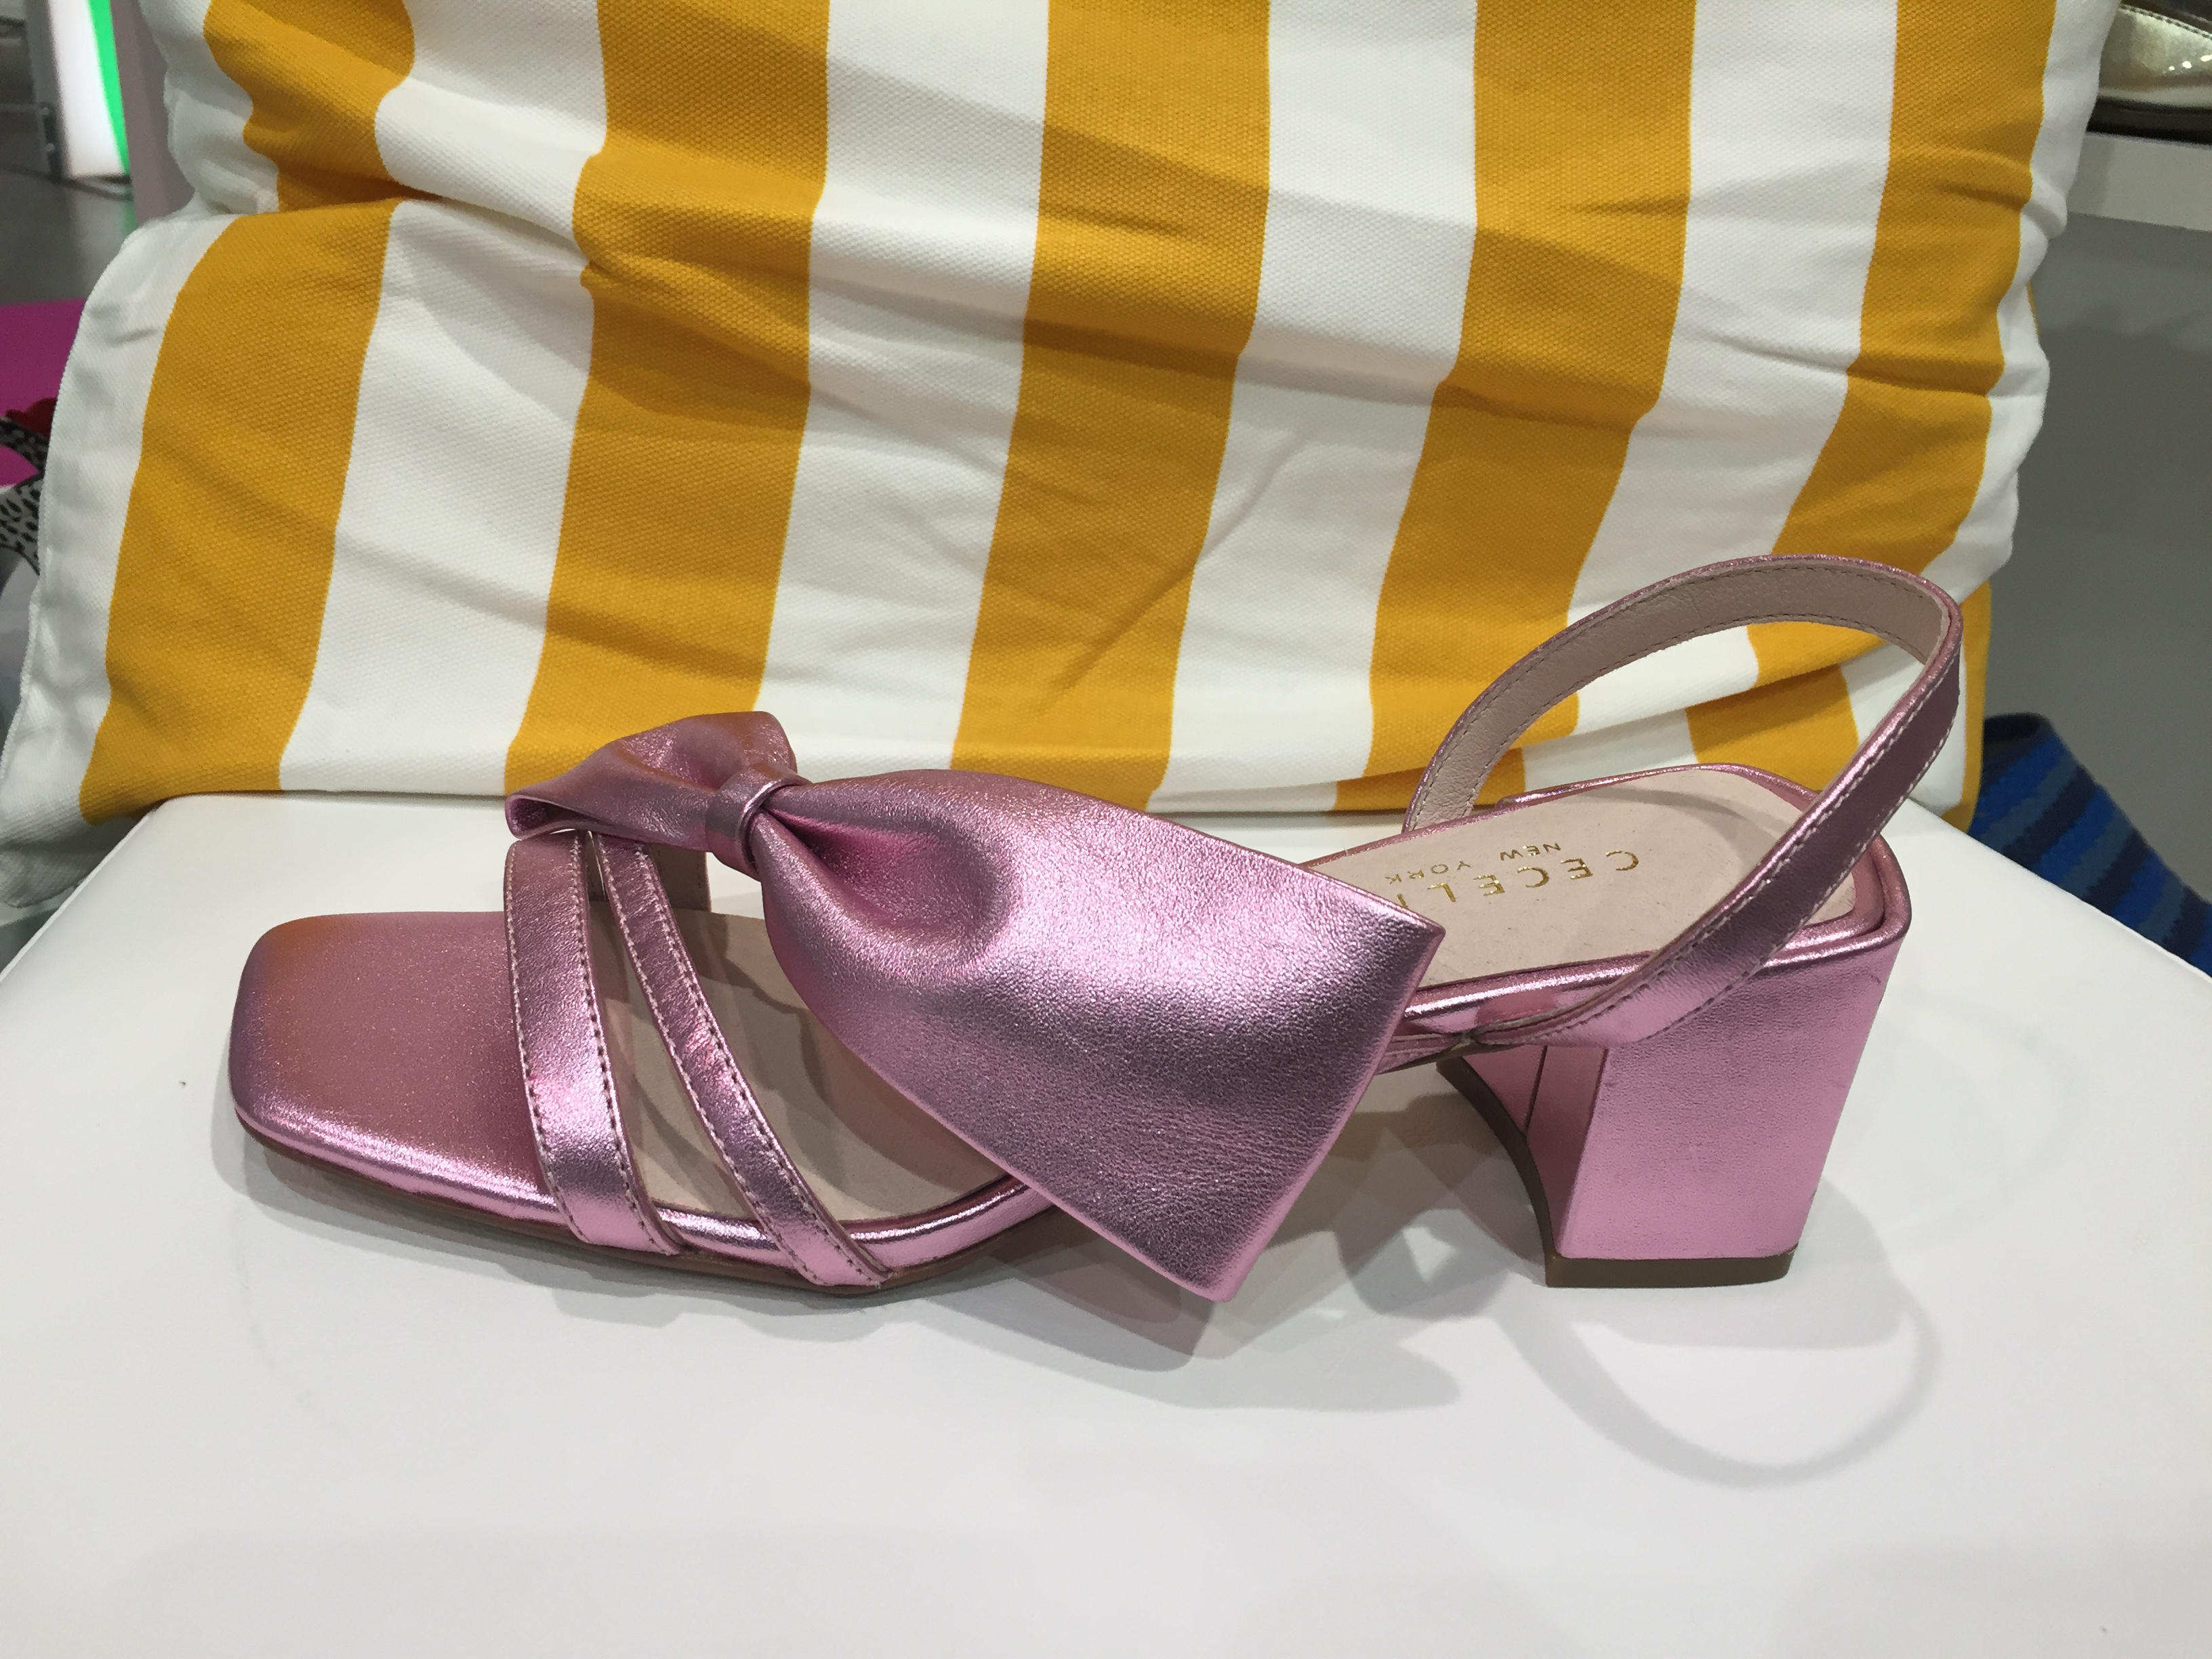 A metallic pink block heel style with a bow from Cecelia New York.